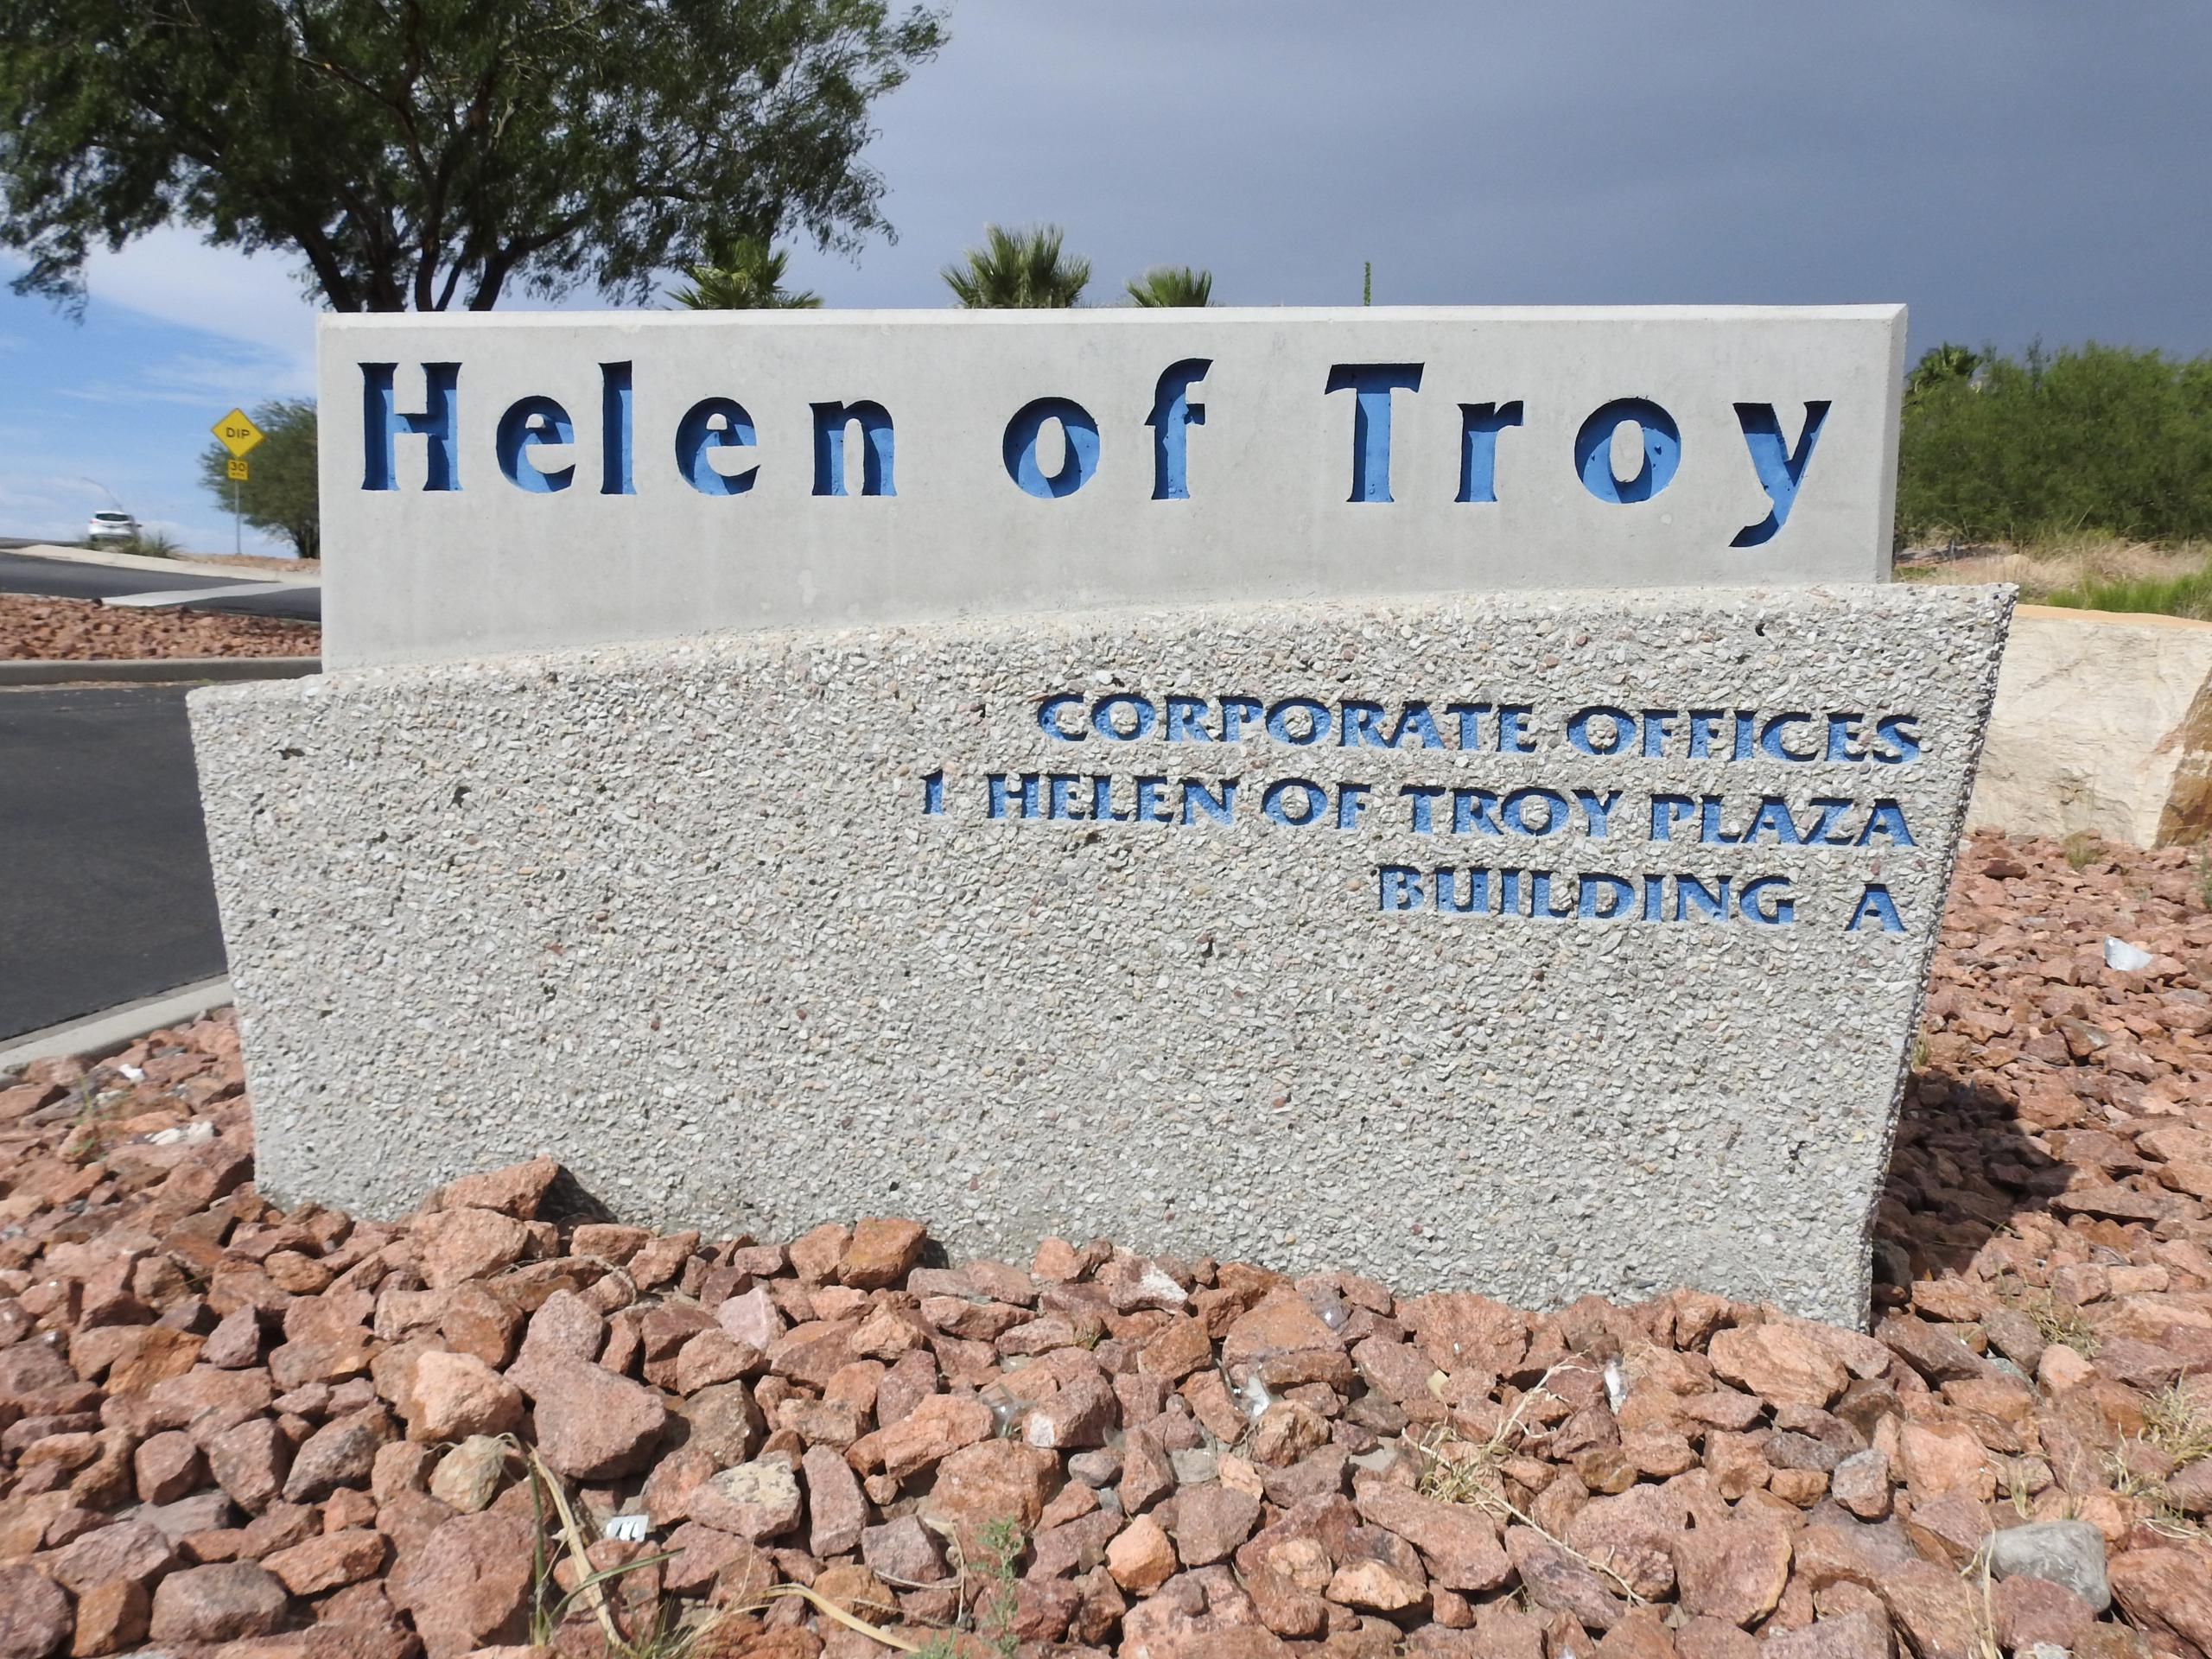 Entrance to Helen of Troy's corporate headquarters in El Paso, Texas.